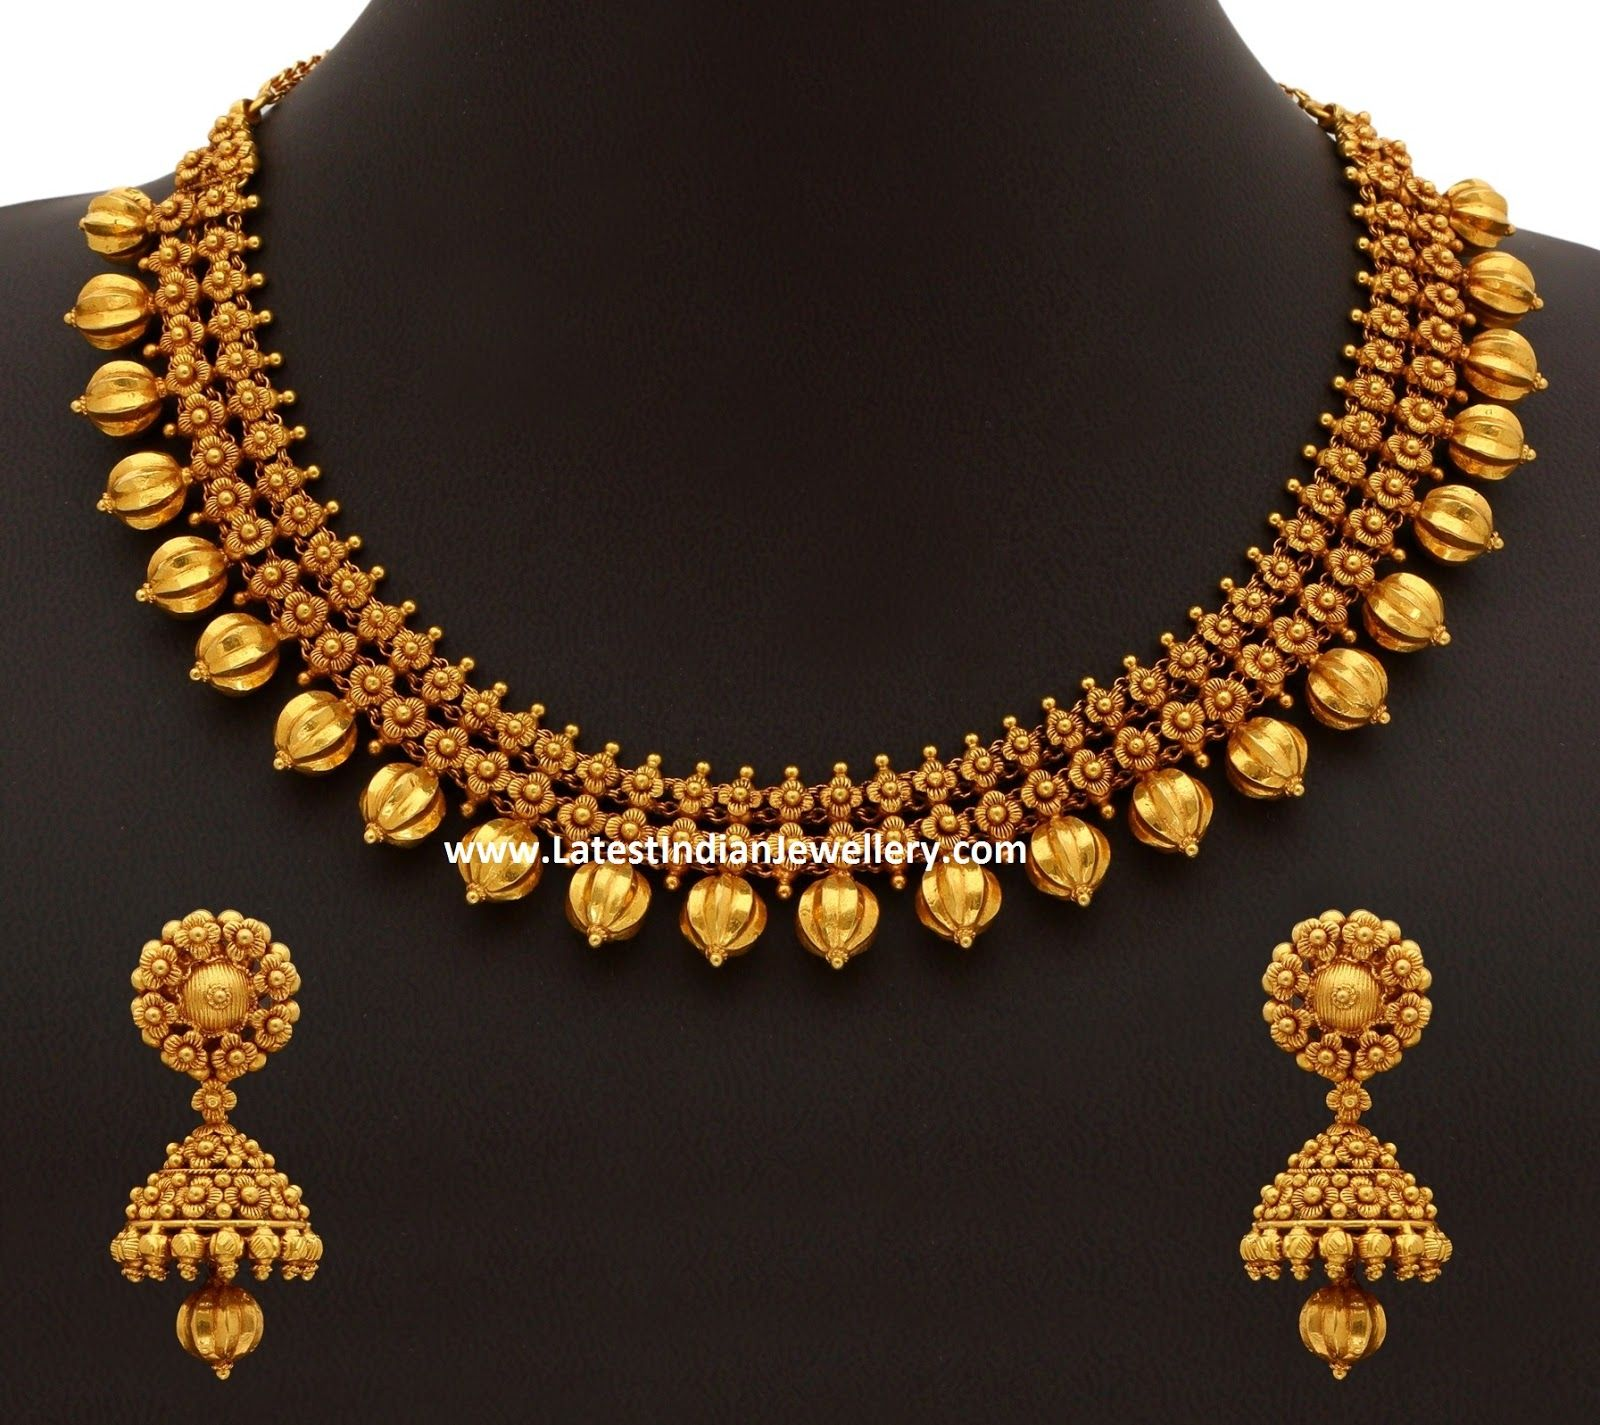 Beautiful 22 carat gold chains with matching pendant designs latest - Plain Antique 22 Carat Gold Necklace And Jhumka Earrings Set In Intricate Hand Work Is A Beauty With No Stones Studded